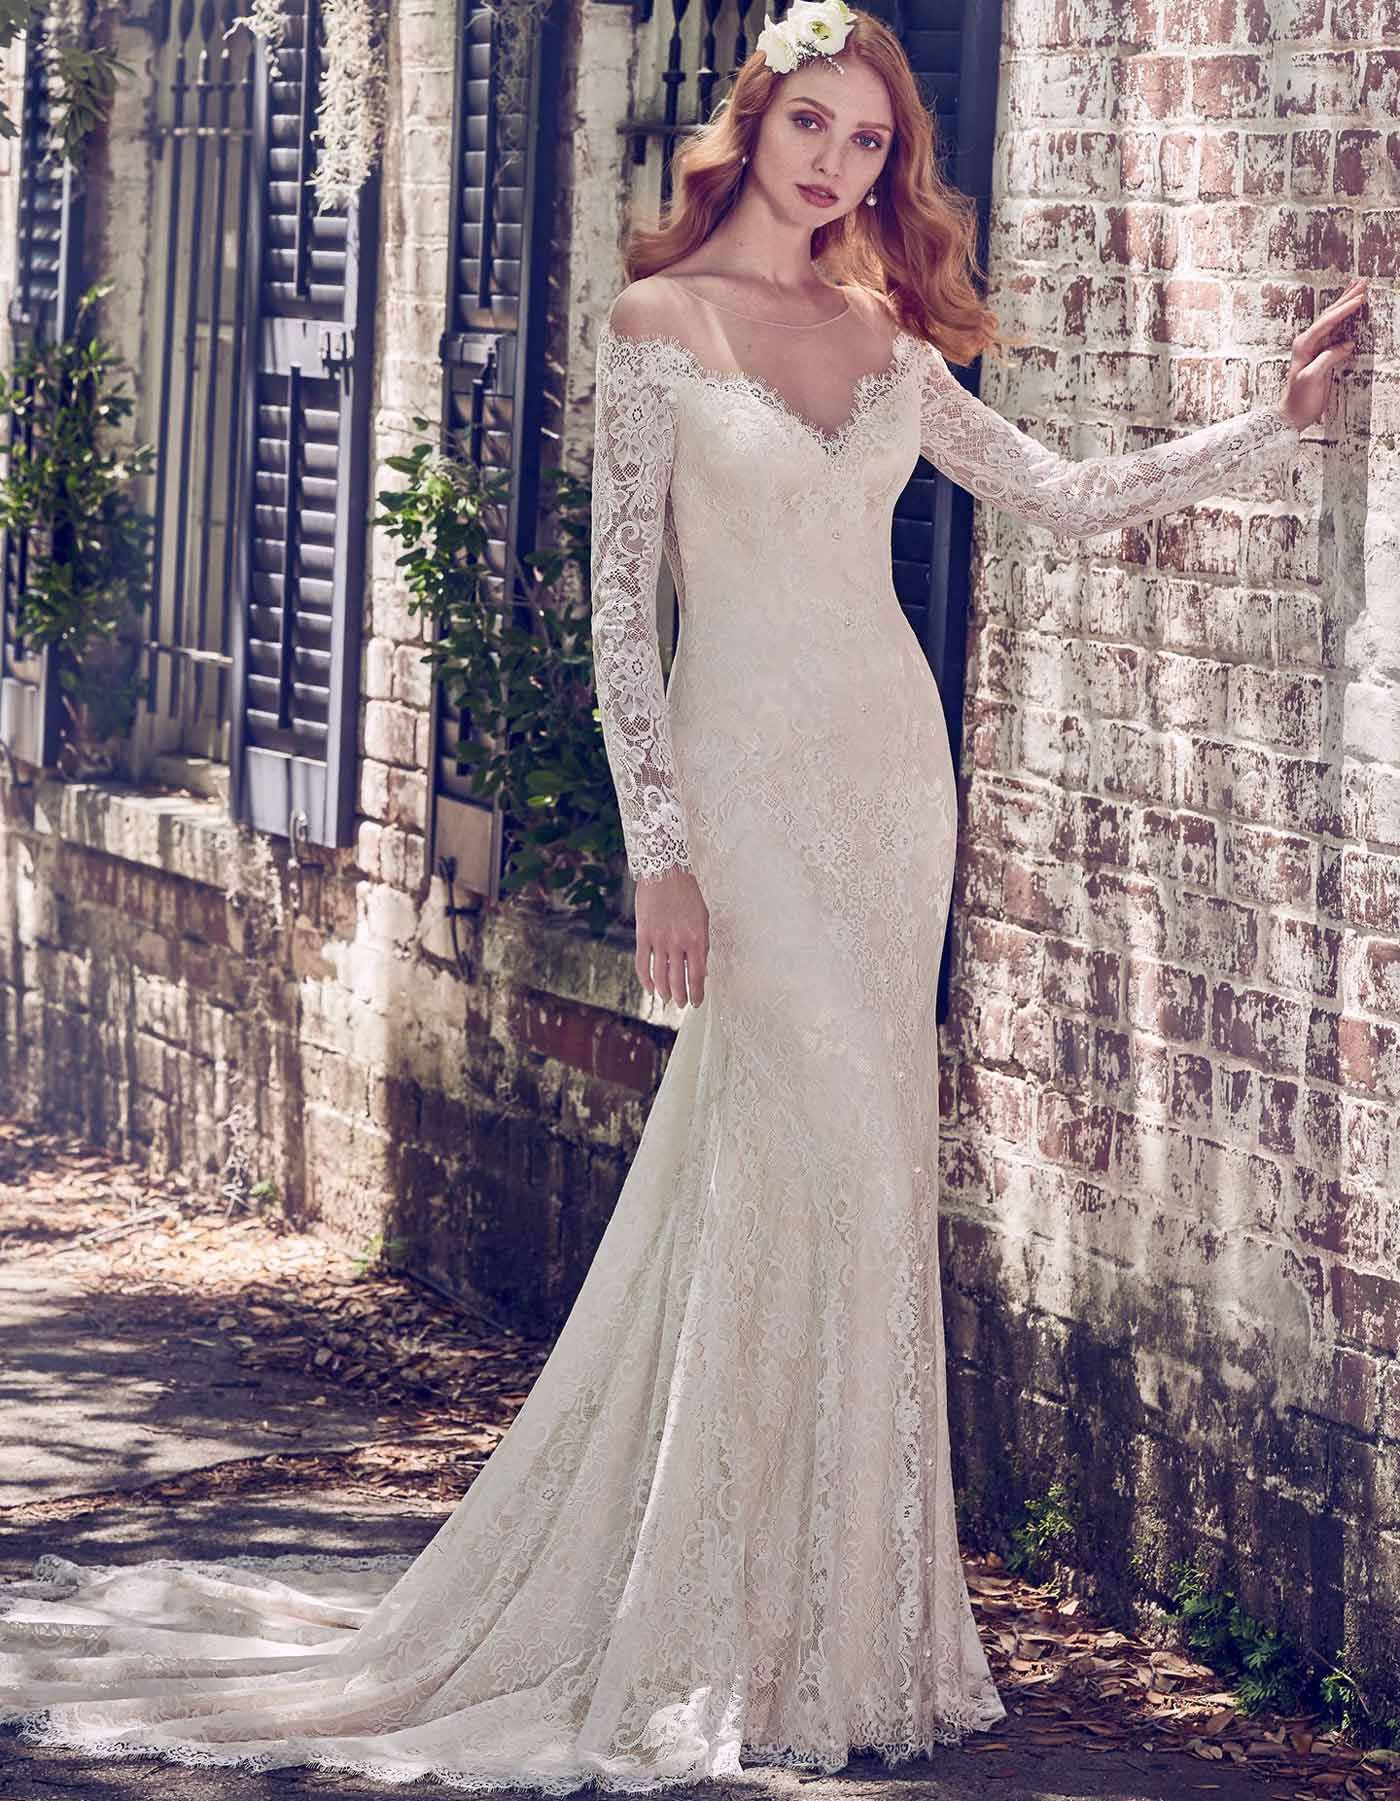 892487806fc MEGAN by MAGGIE SOTTERO - Sheer lace comprises the illusion off-the-shoulder  neckline